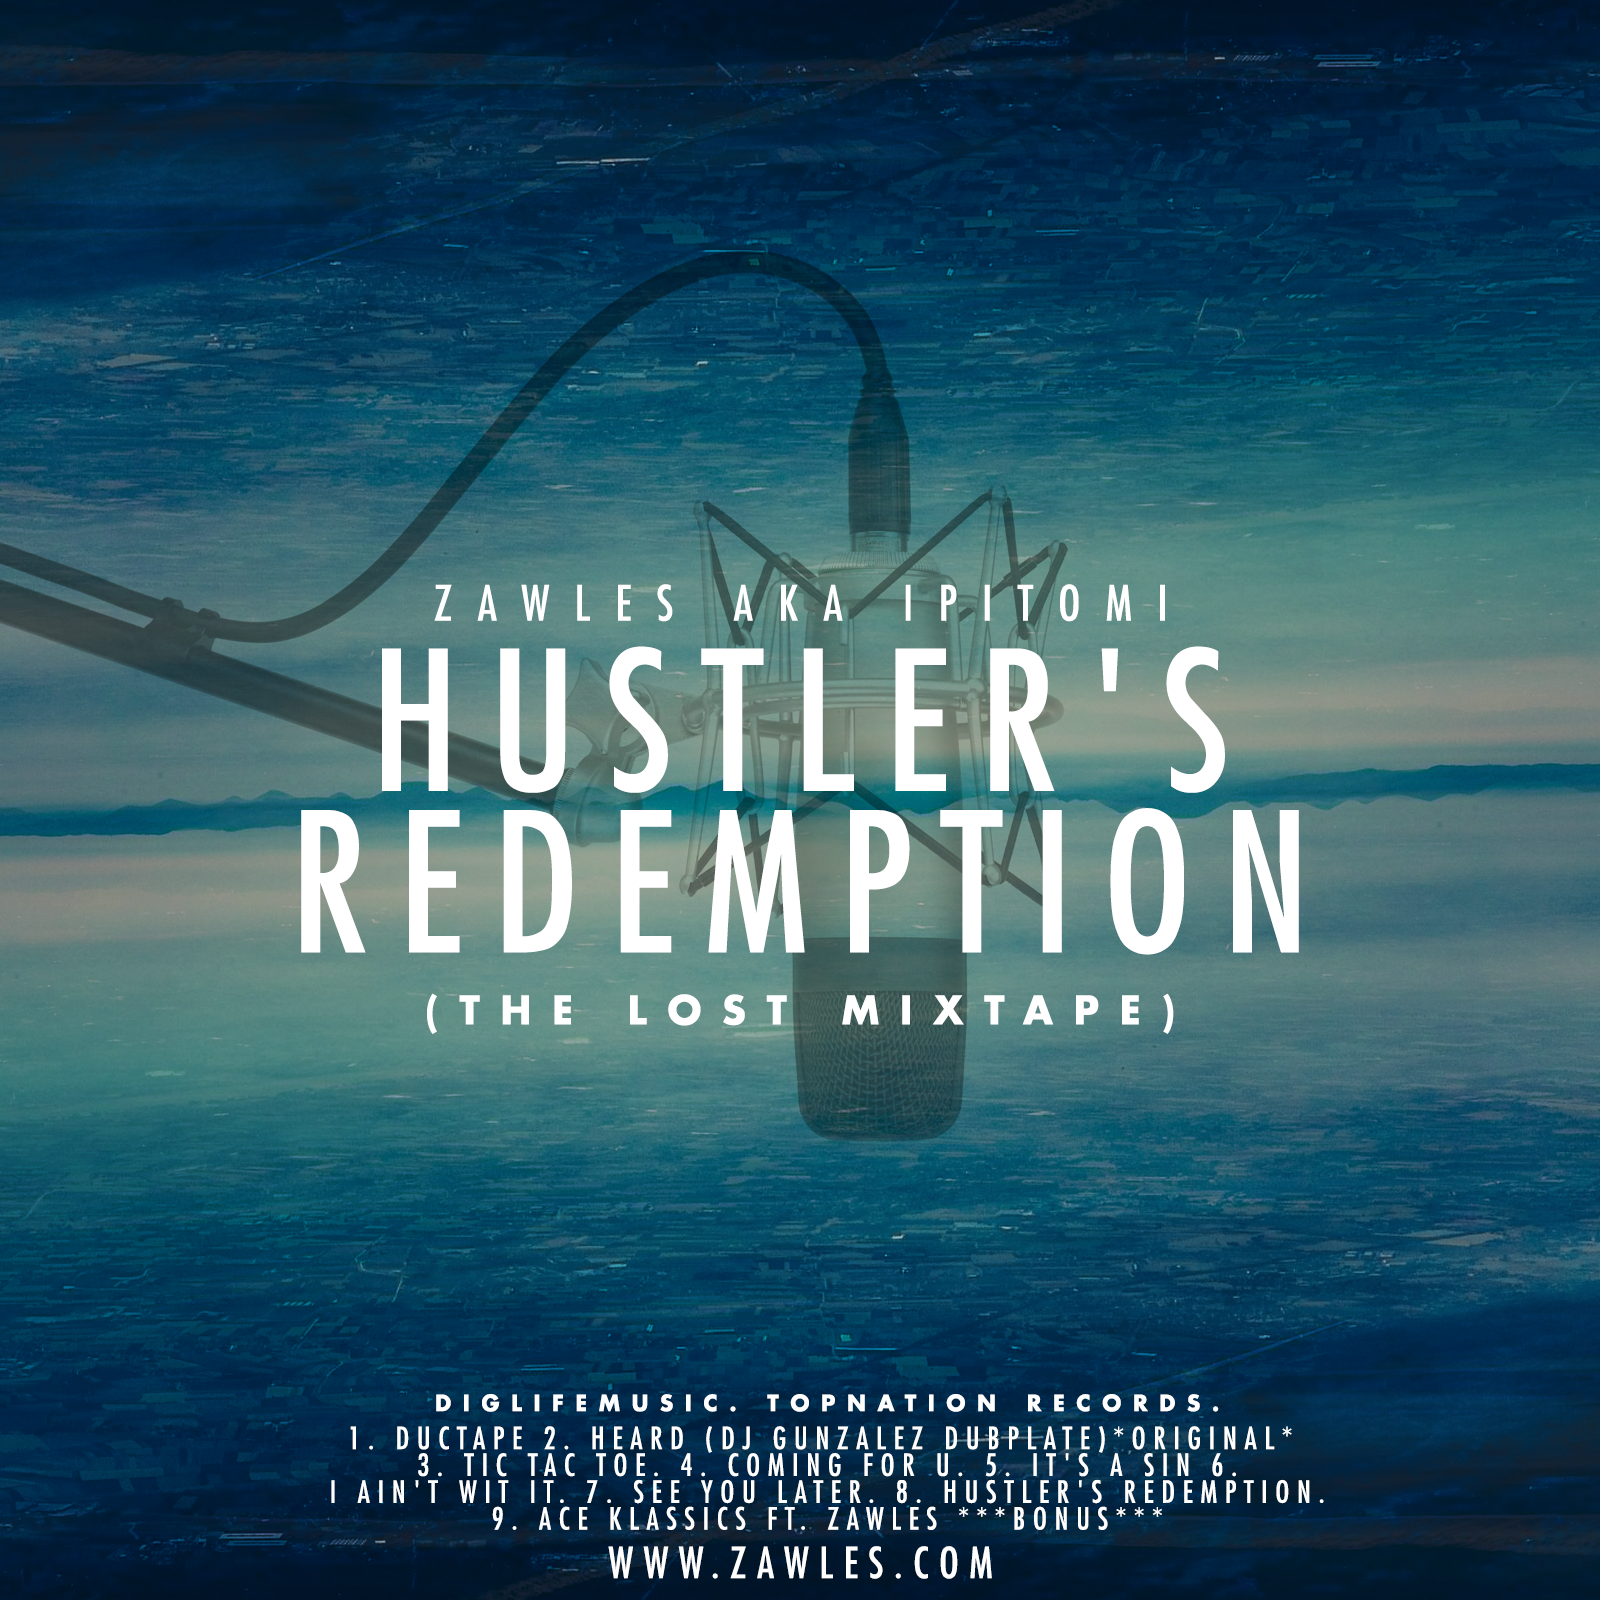 cover - Hustler's Redemption (the lost mixtape) out now!